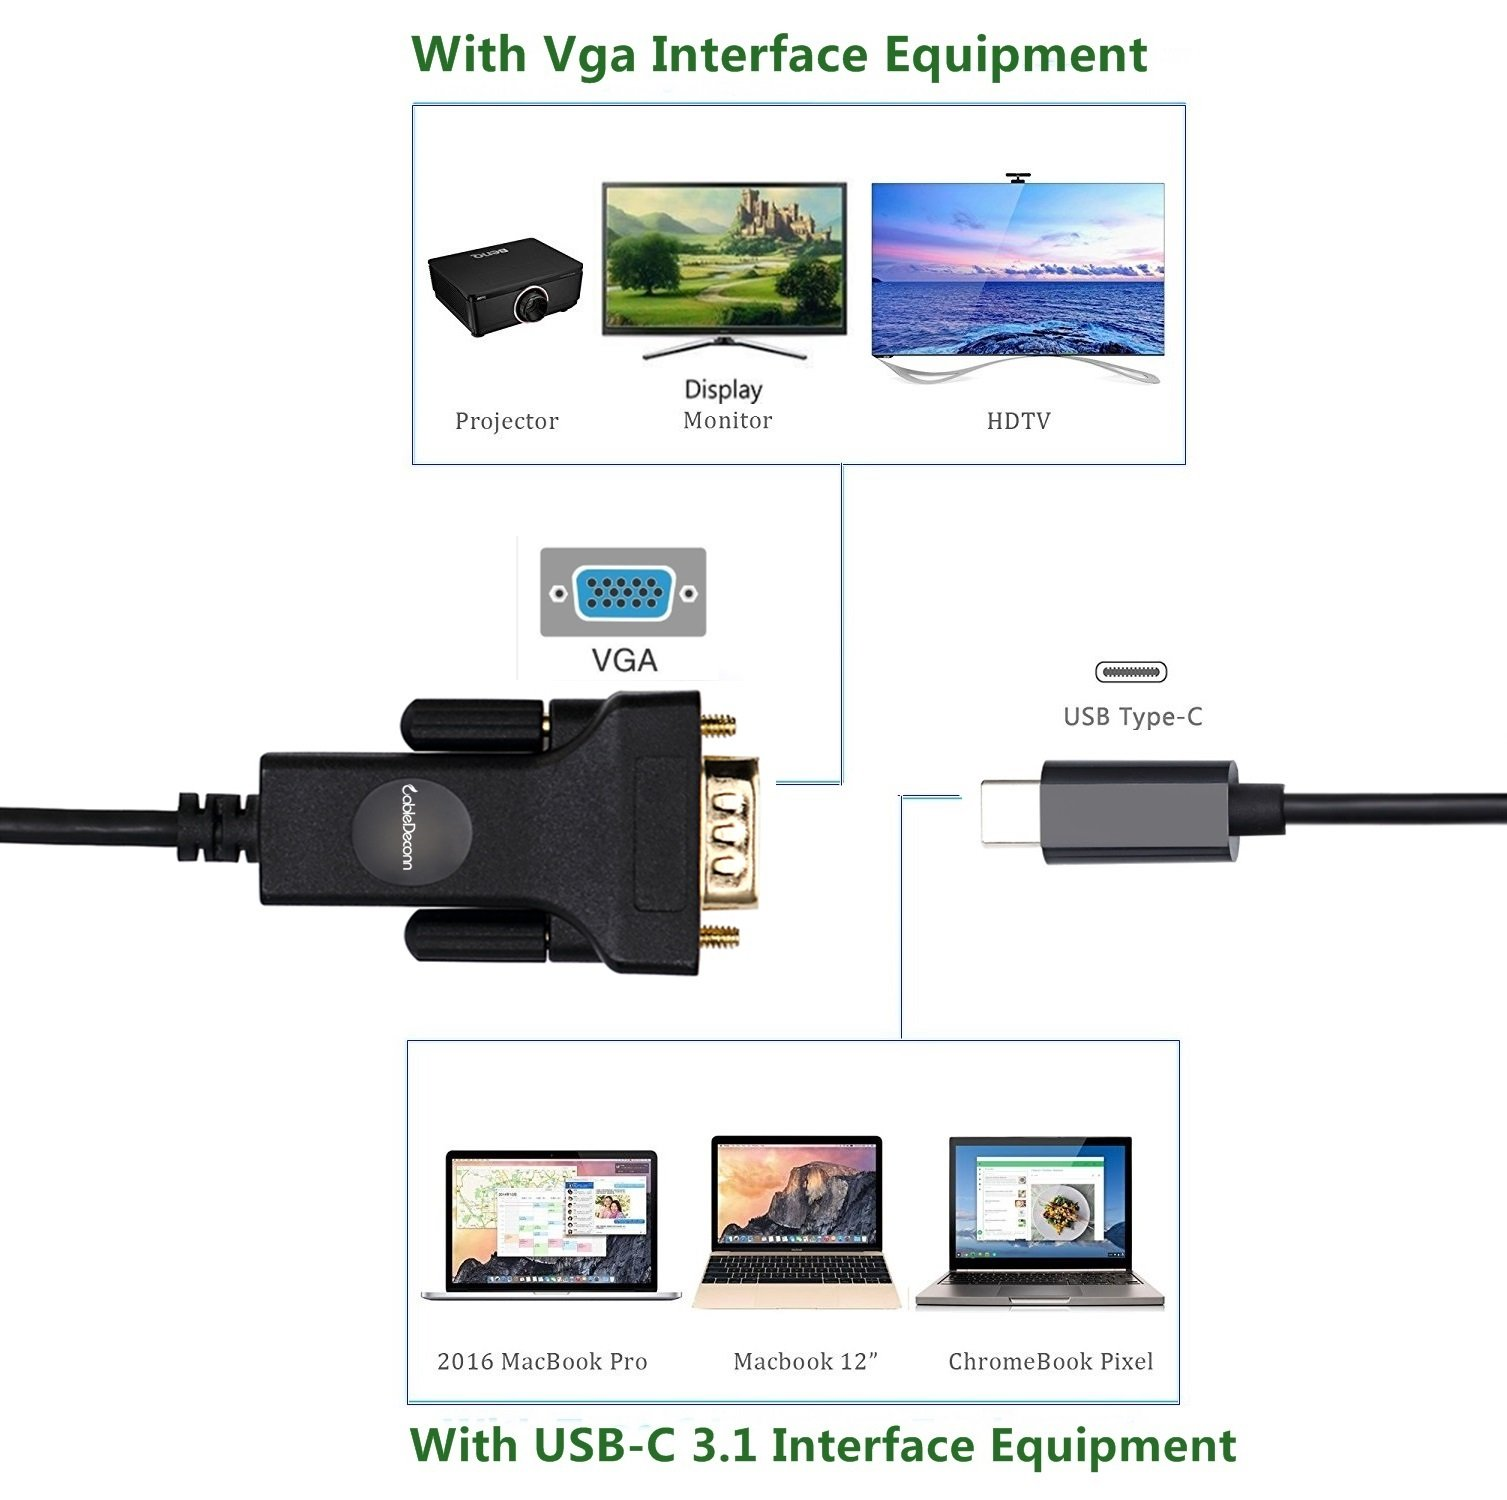 USB-C To VGA ,CableDeconn Thunderbolt 3 Type C to VGA Male Converter Adapter Cable 1.8M for New Macbook Google Chromebook Pixel,Dell XPS 13 15 Huawei Mate10 by CableDeconn (Image #4)